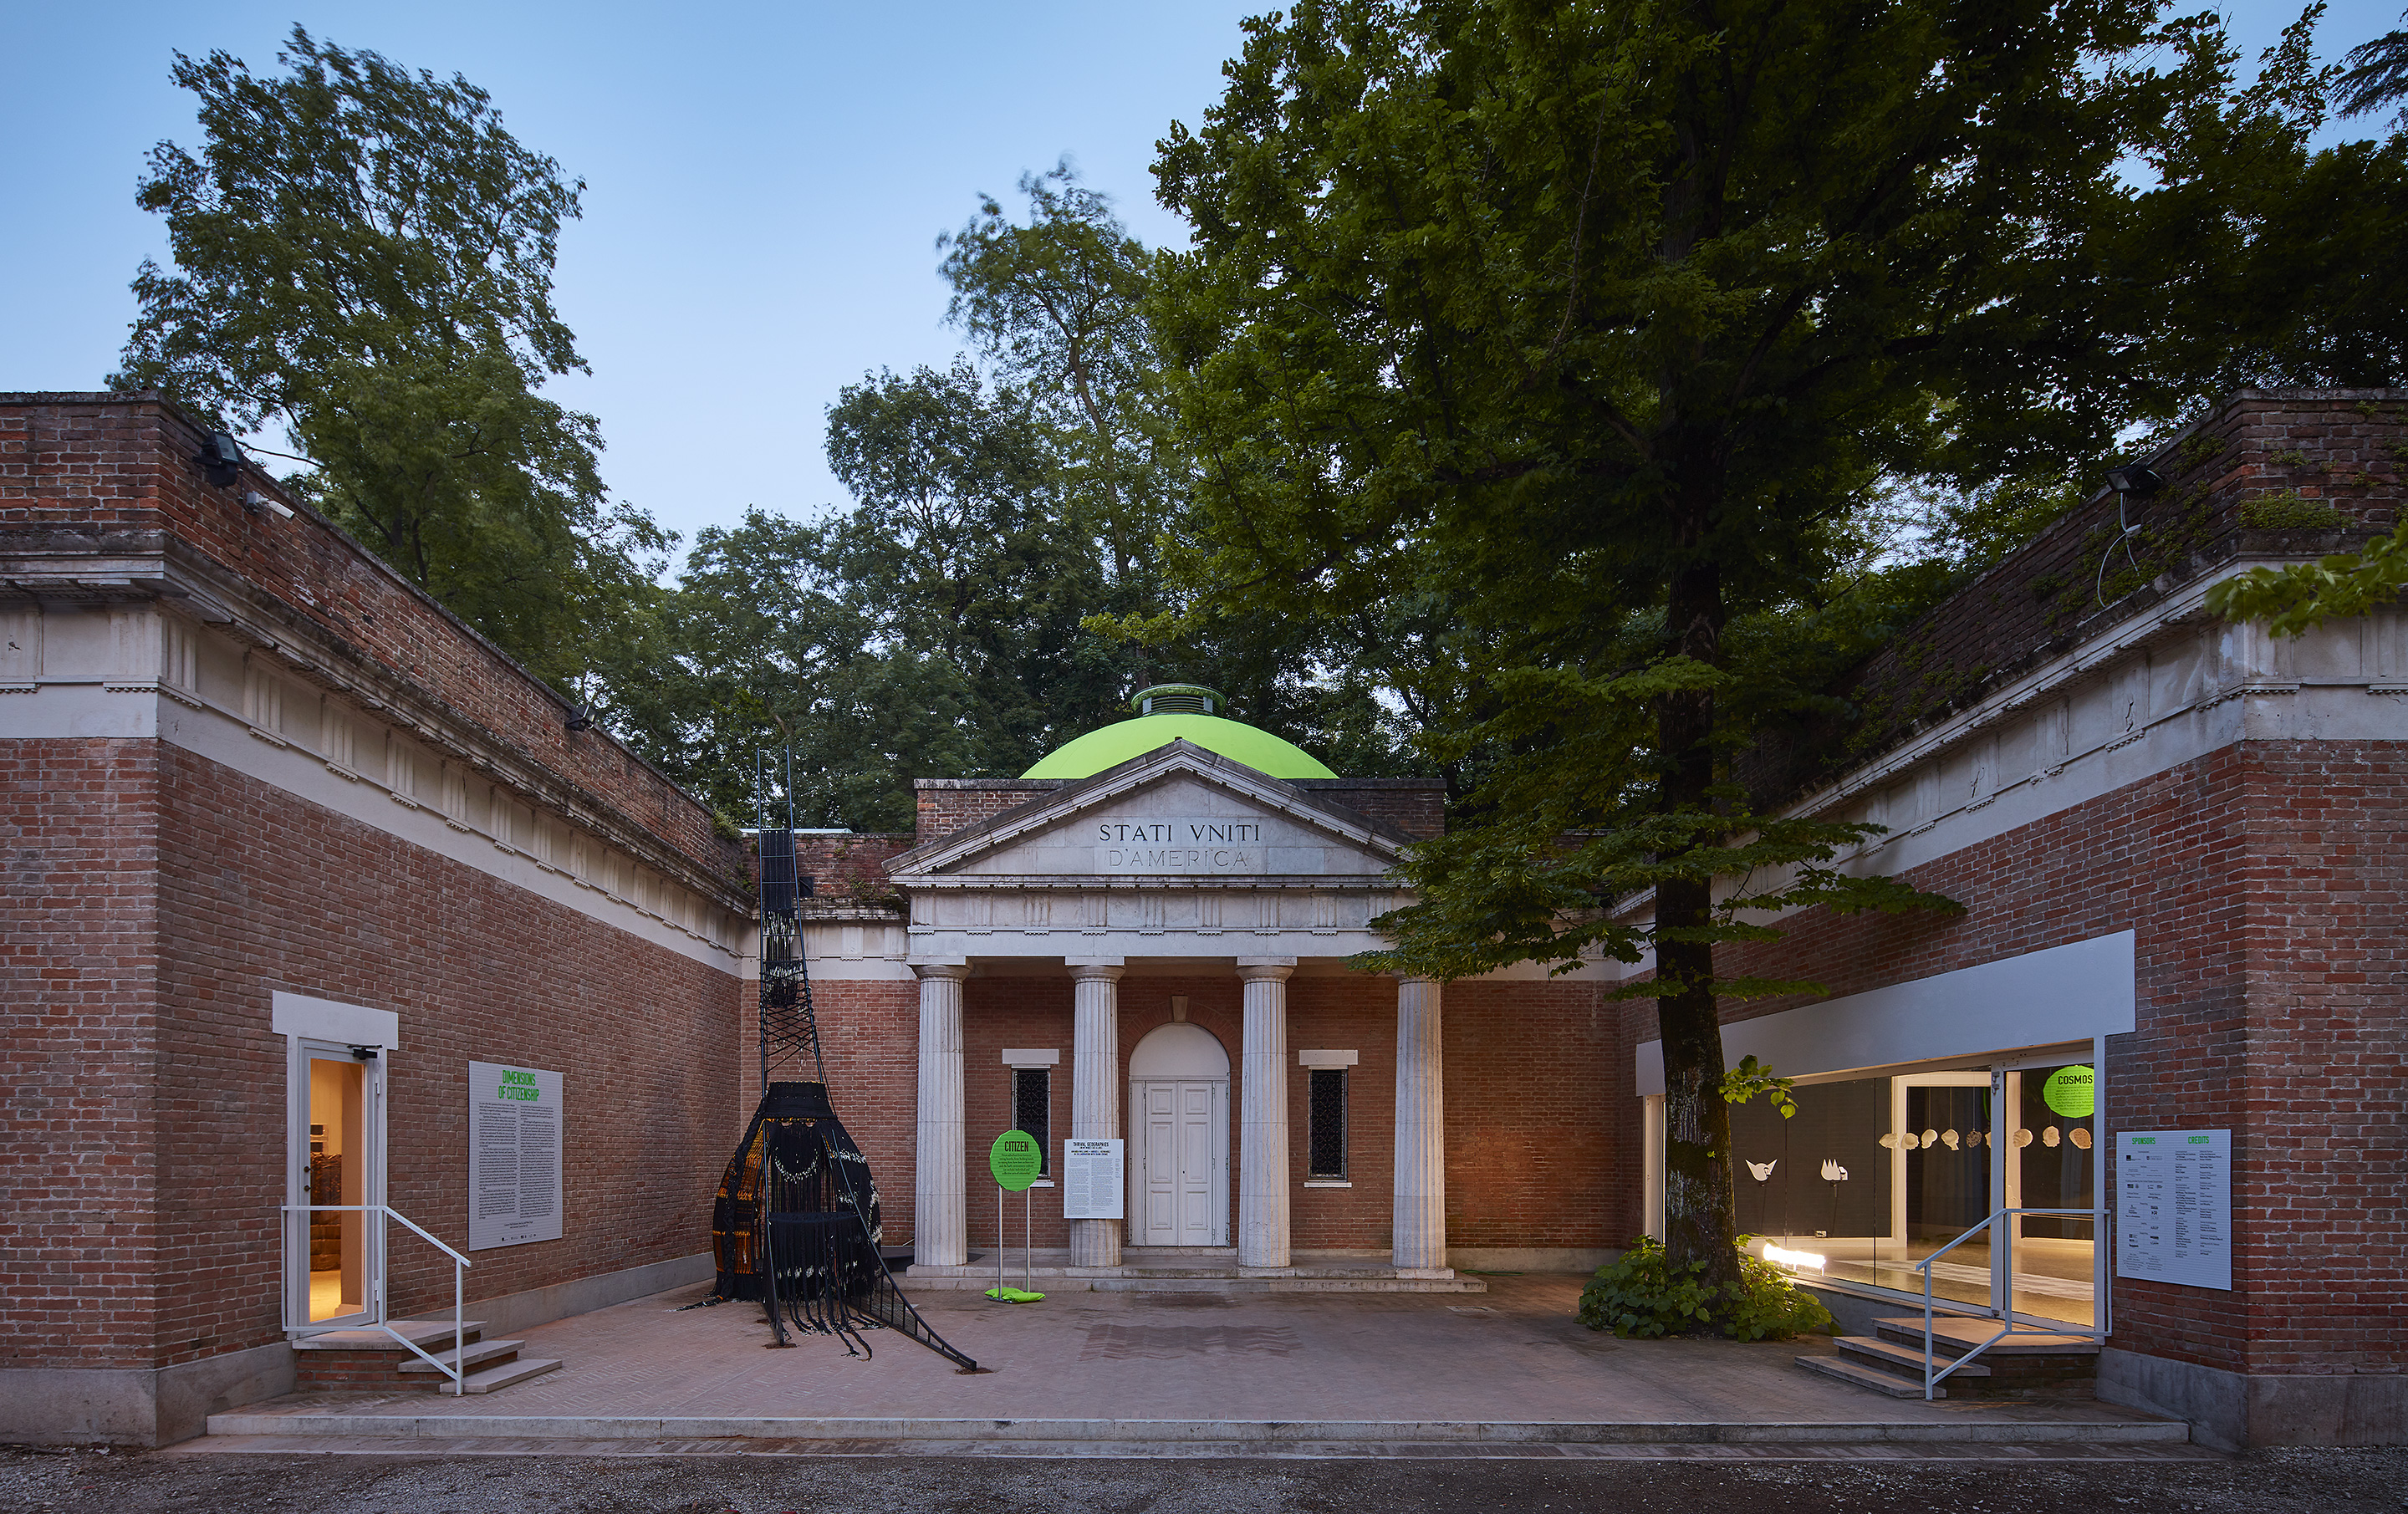 Image: The 2018 U.S. Pavilion. The image shows an exterior view of the U.S. Pavilion at dusk with light glowing from the windows of the gallery spaces. Photo © Tom Harris. Courtesy of the School of the Art Institute of Chicago and the University of Chicago.